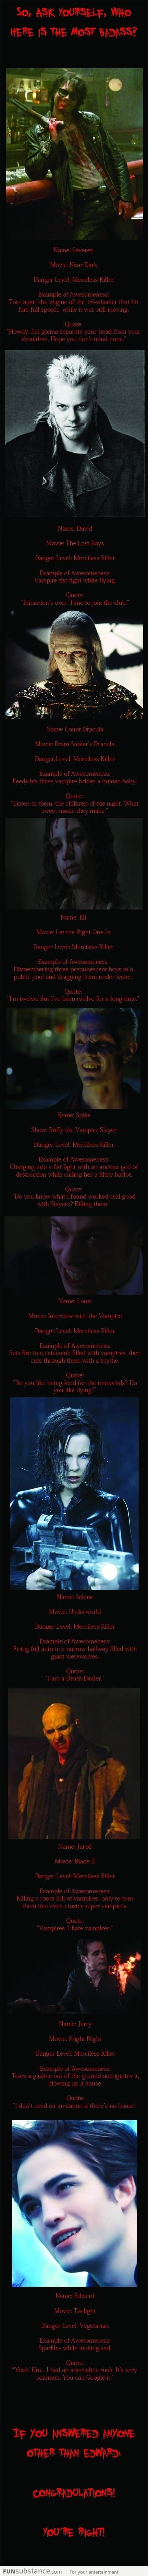 So Who Is Your Favorite Vampire?